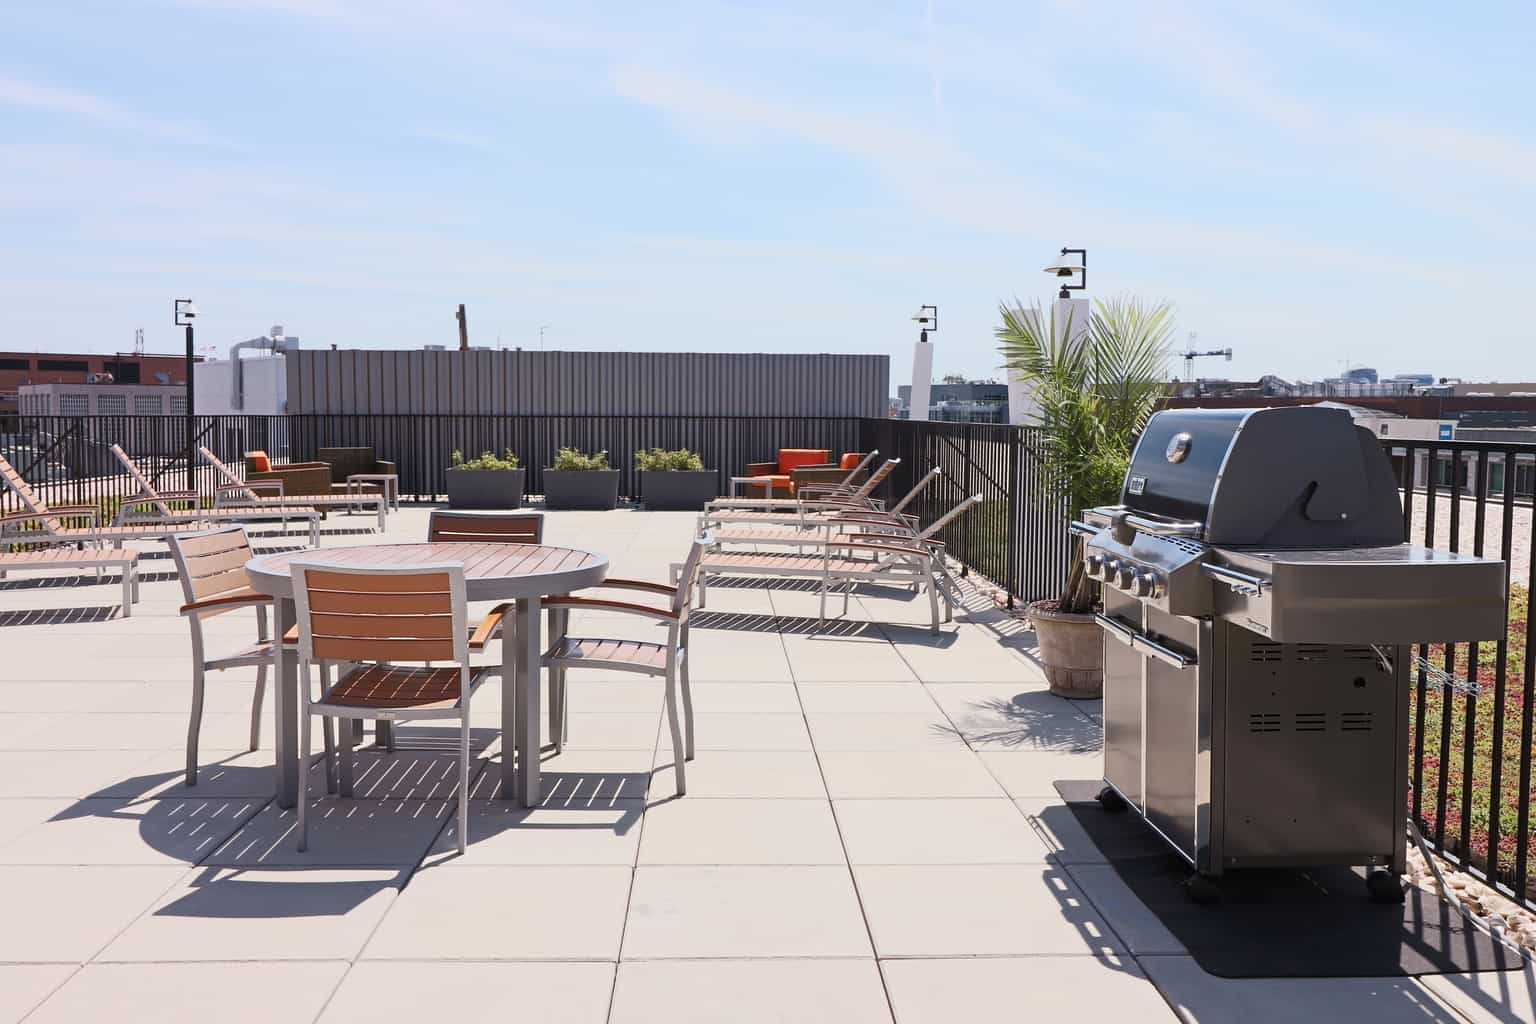 Hamilton House Roof Top Patio With Grill and Chairs